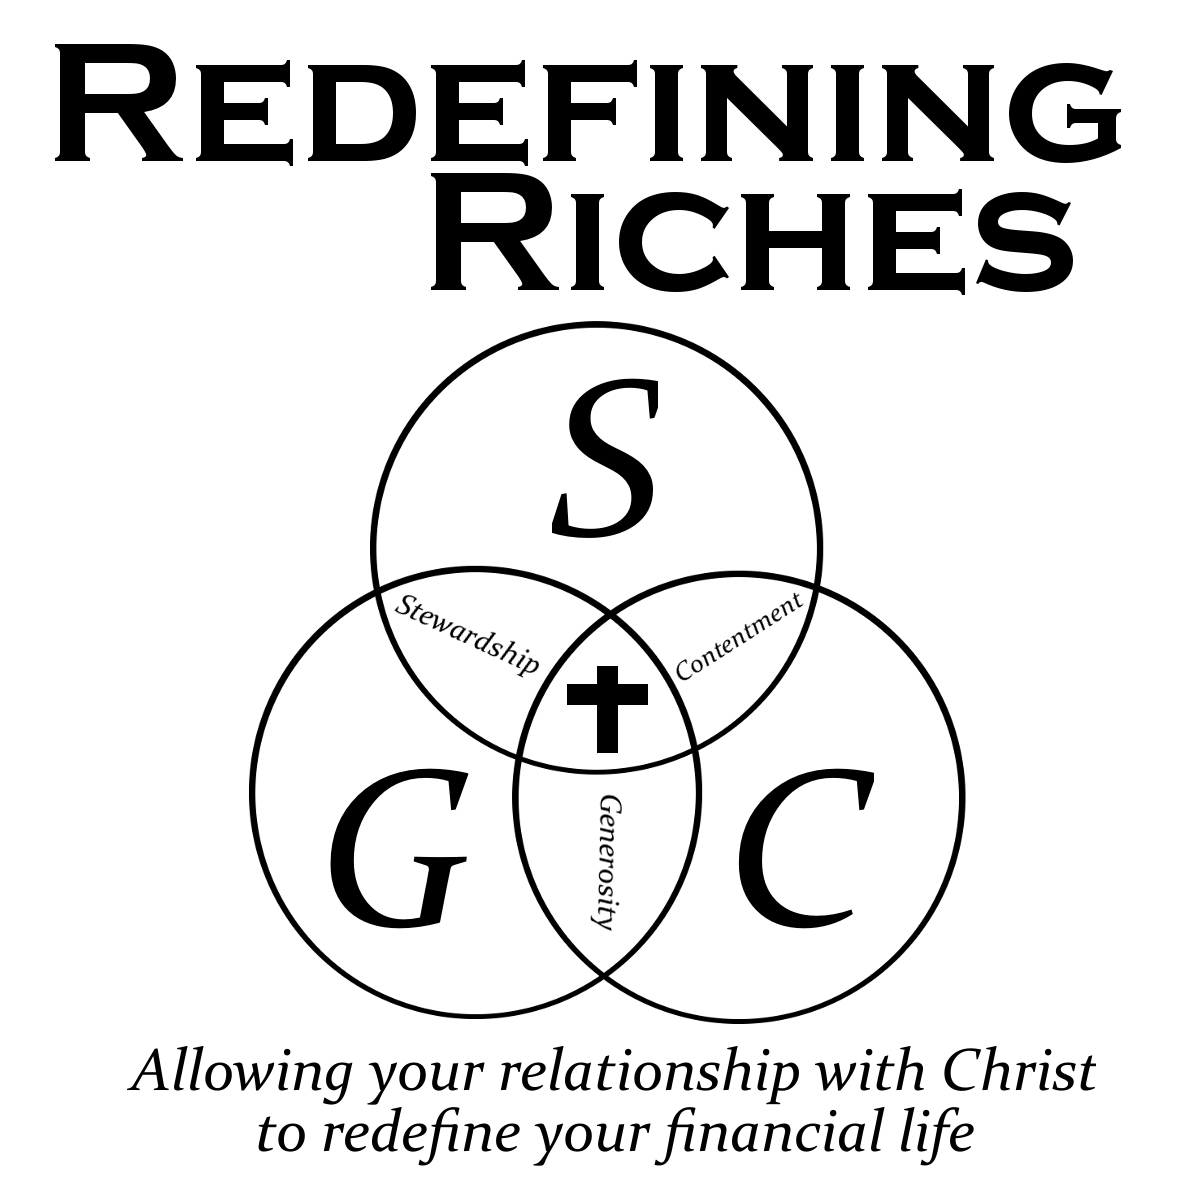 Redefining Riches Sunday School Series: The Basics of the